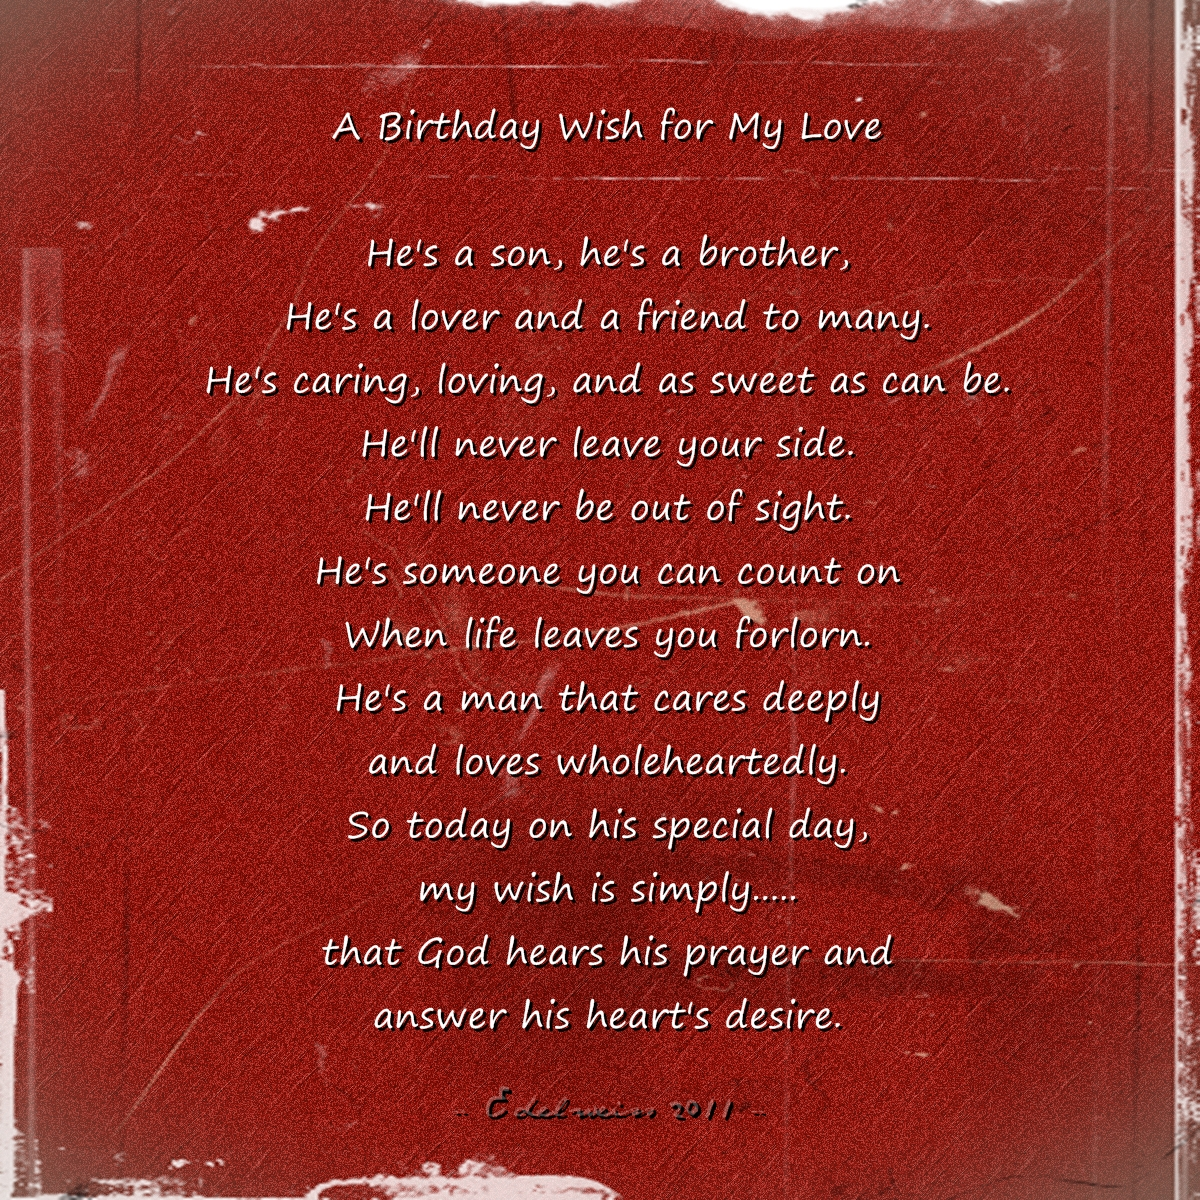 birthday message for love of my life ; bday_wish_for_hon